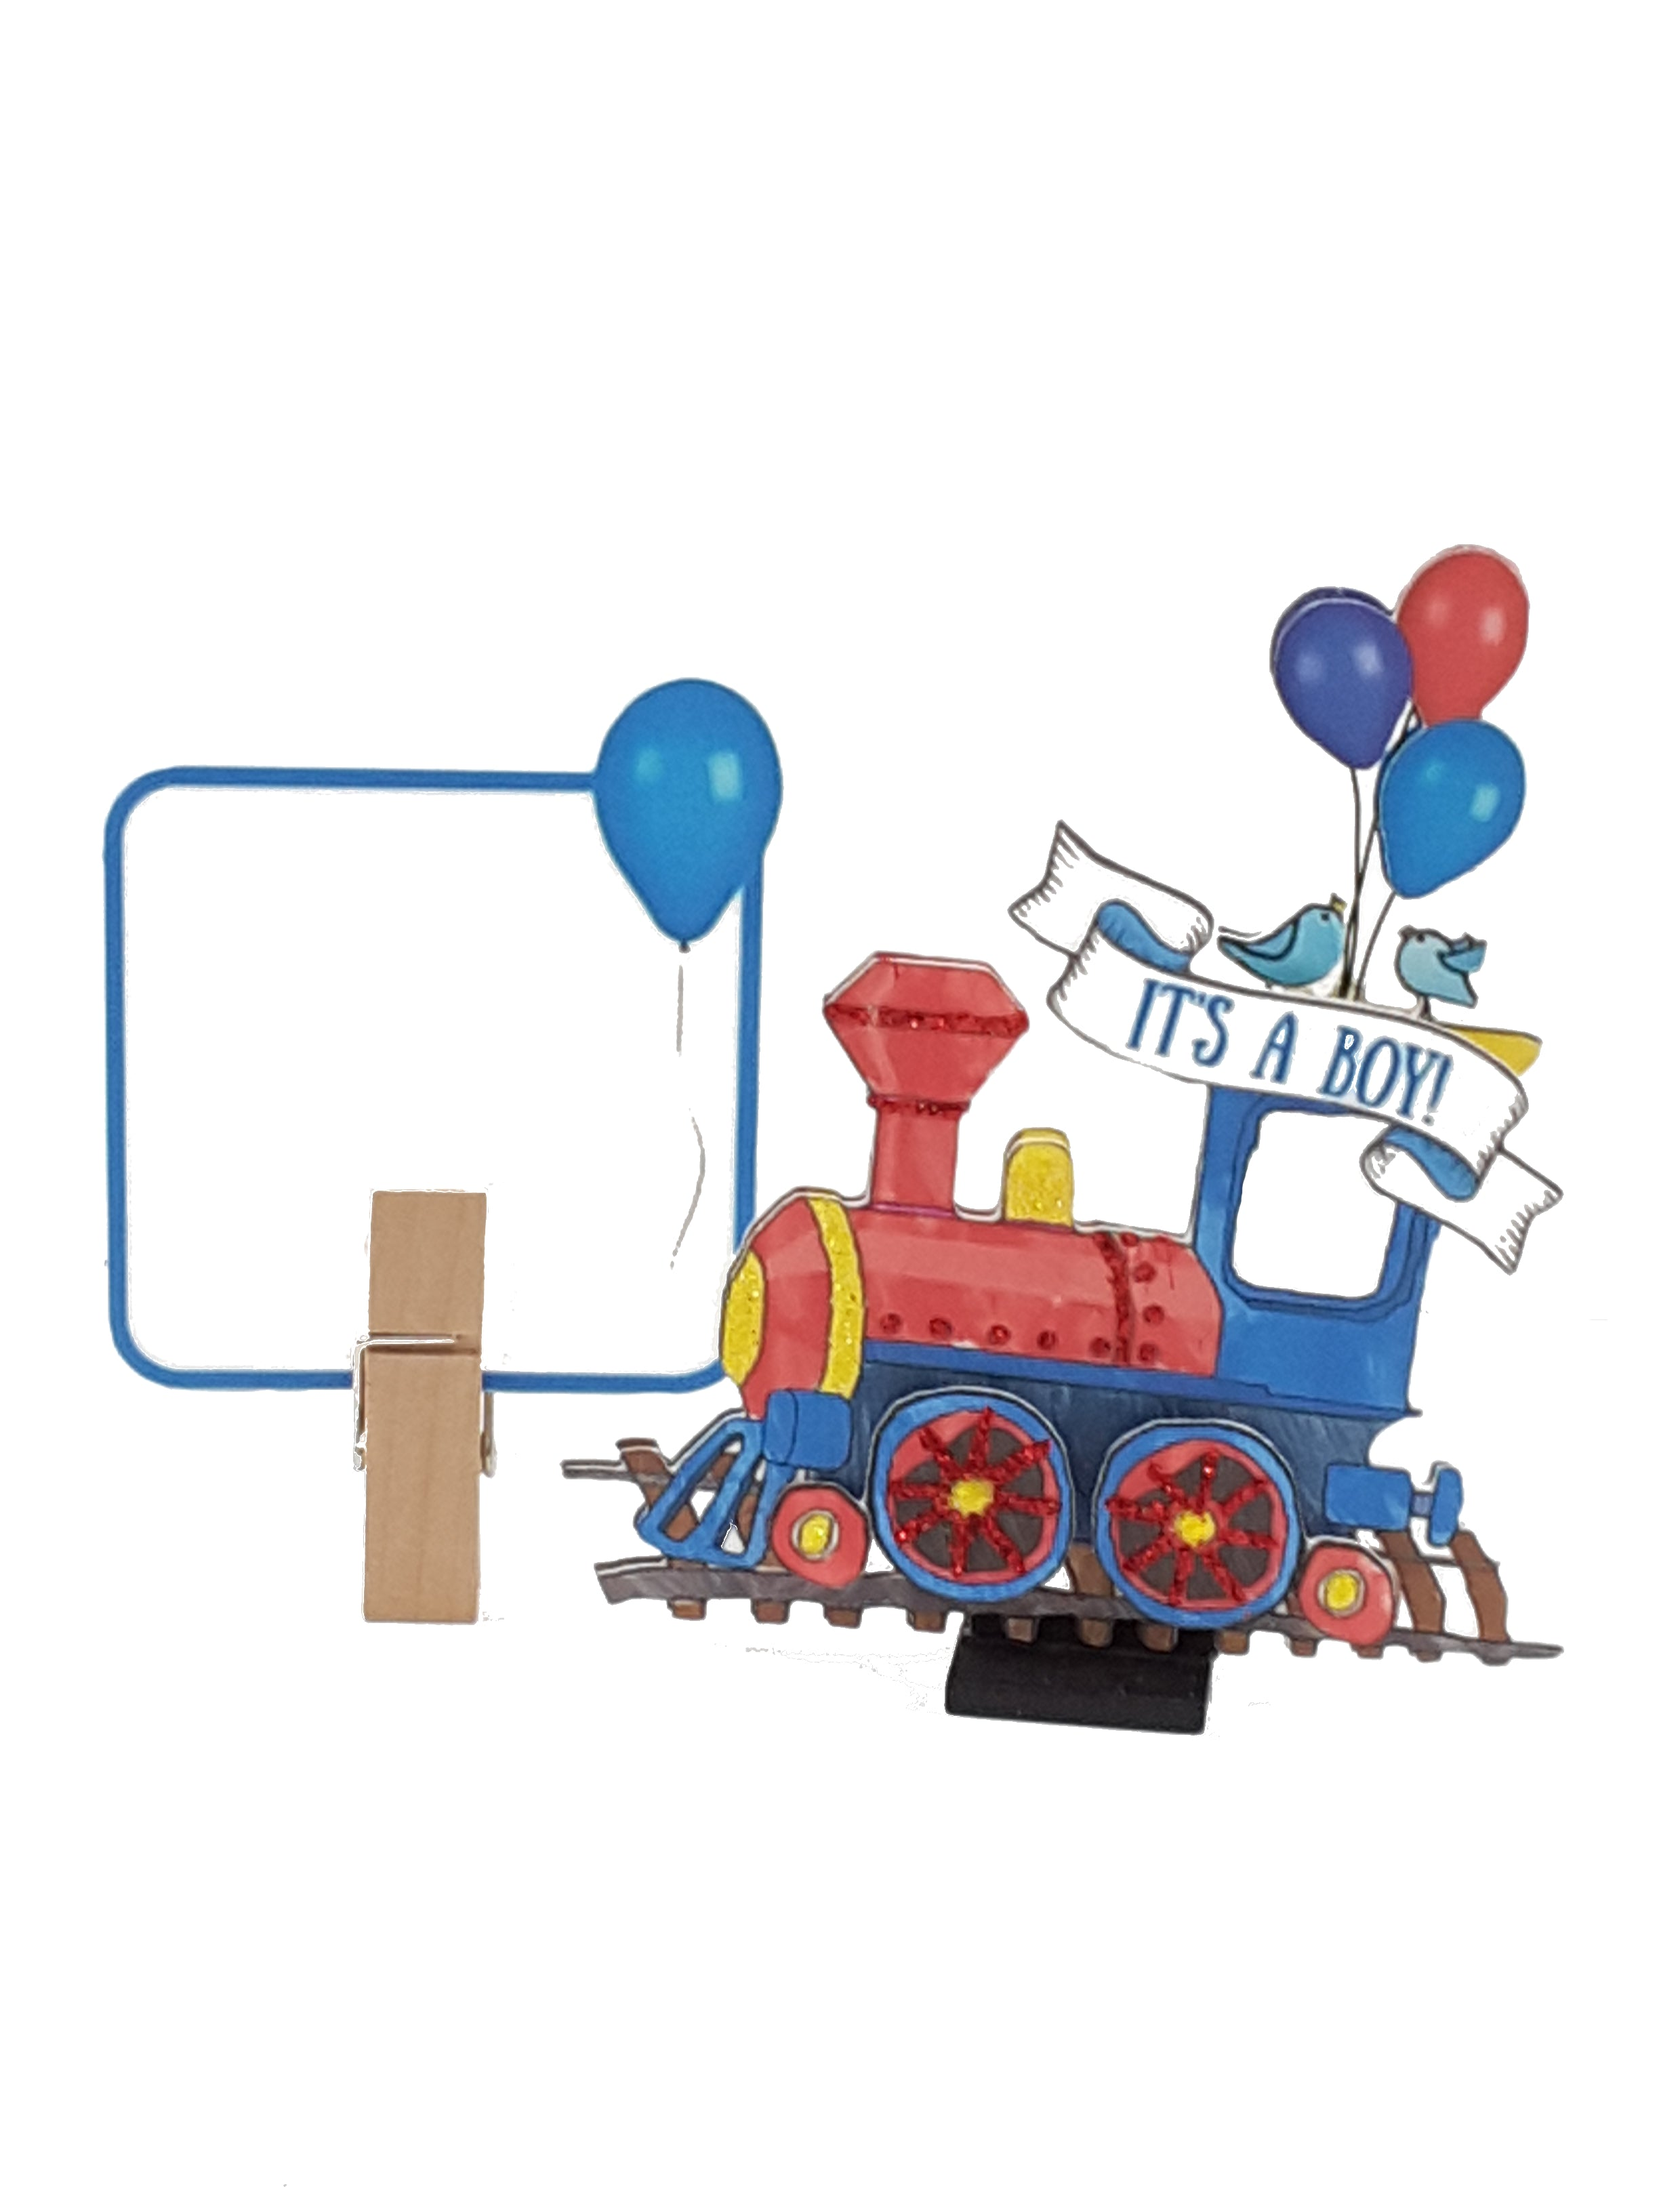 Personalized 3D card with train for newborn boy